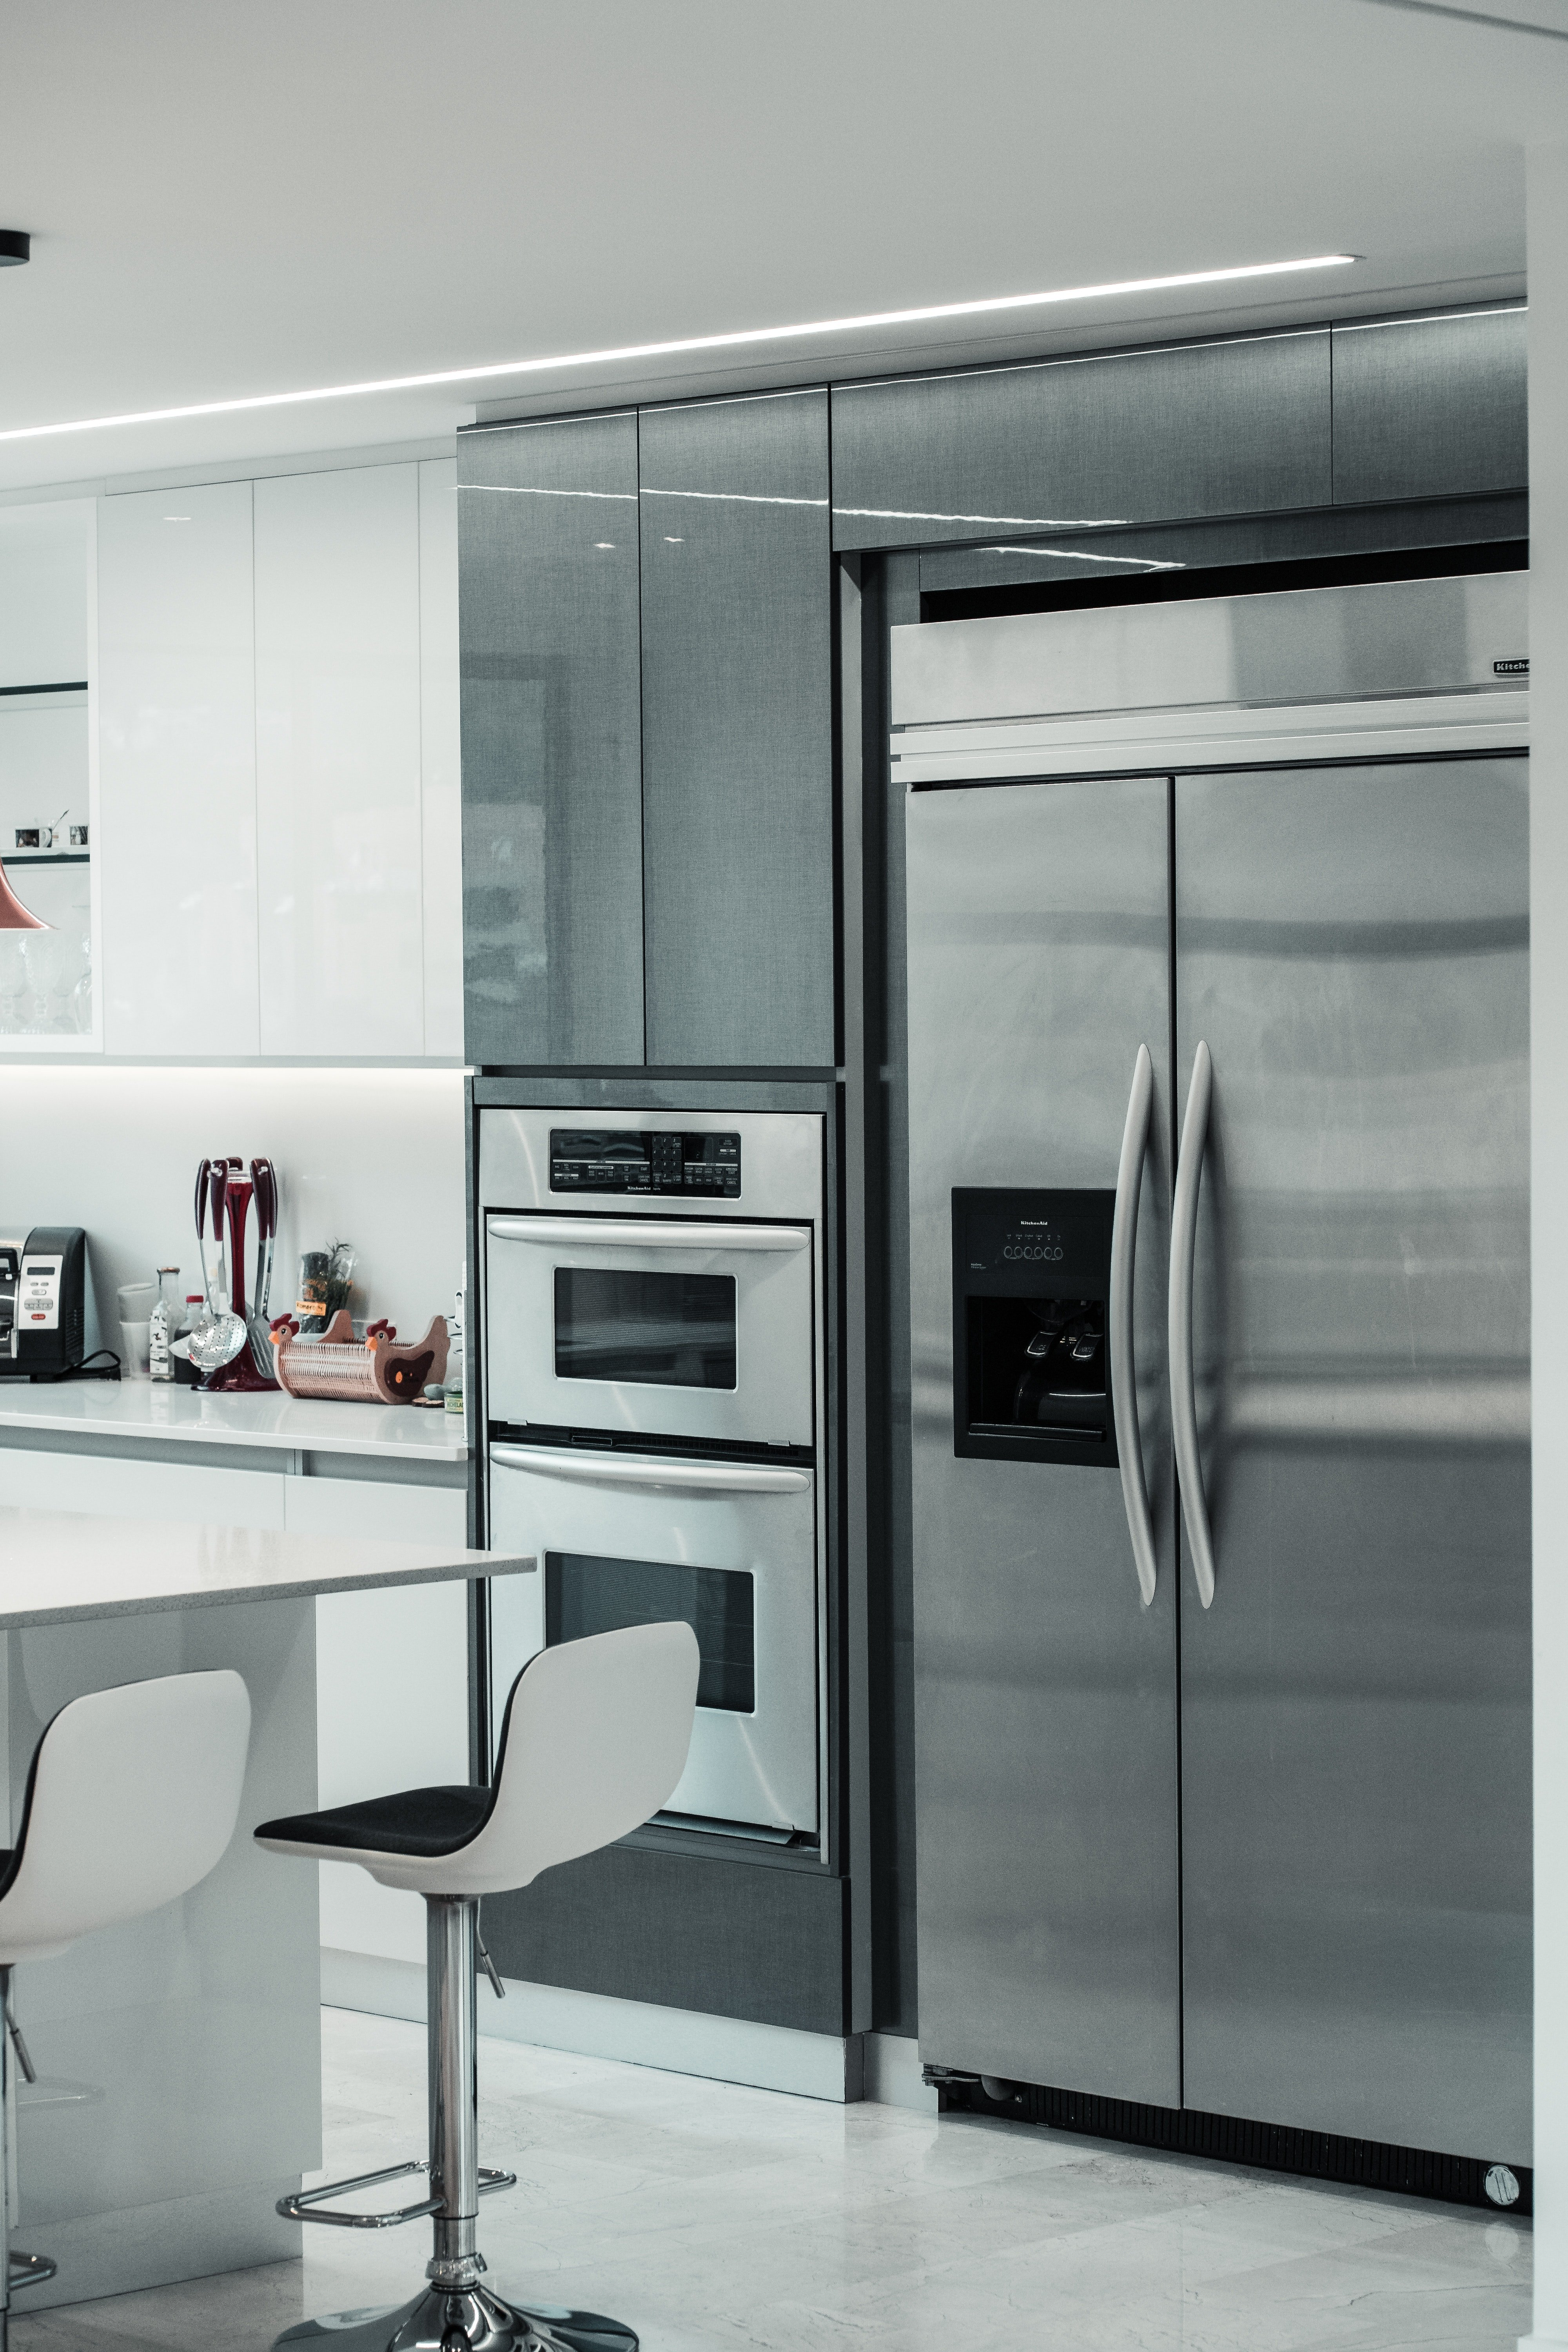 Pictured - A kitchen with a side by side refrigerator | Source: Pexels